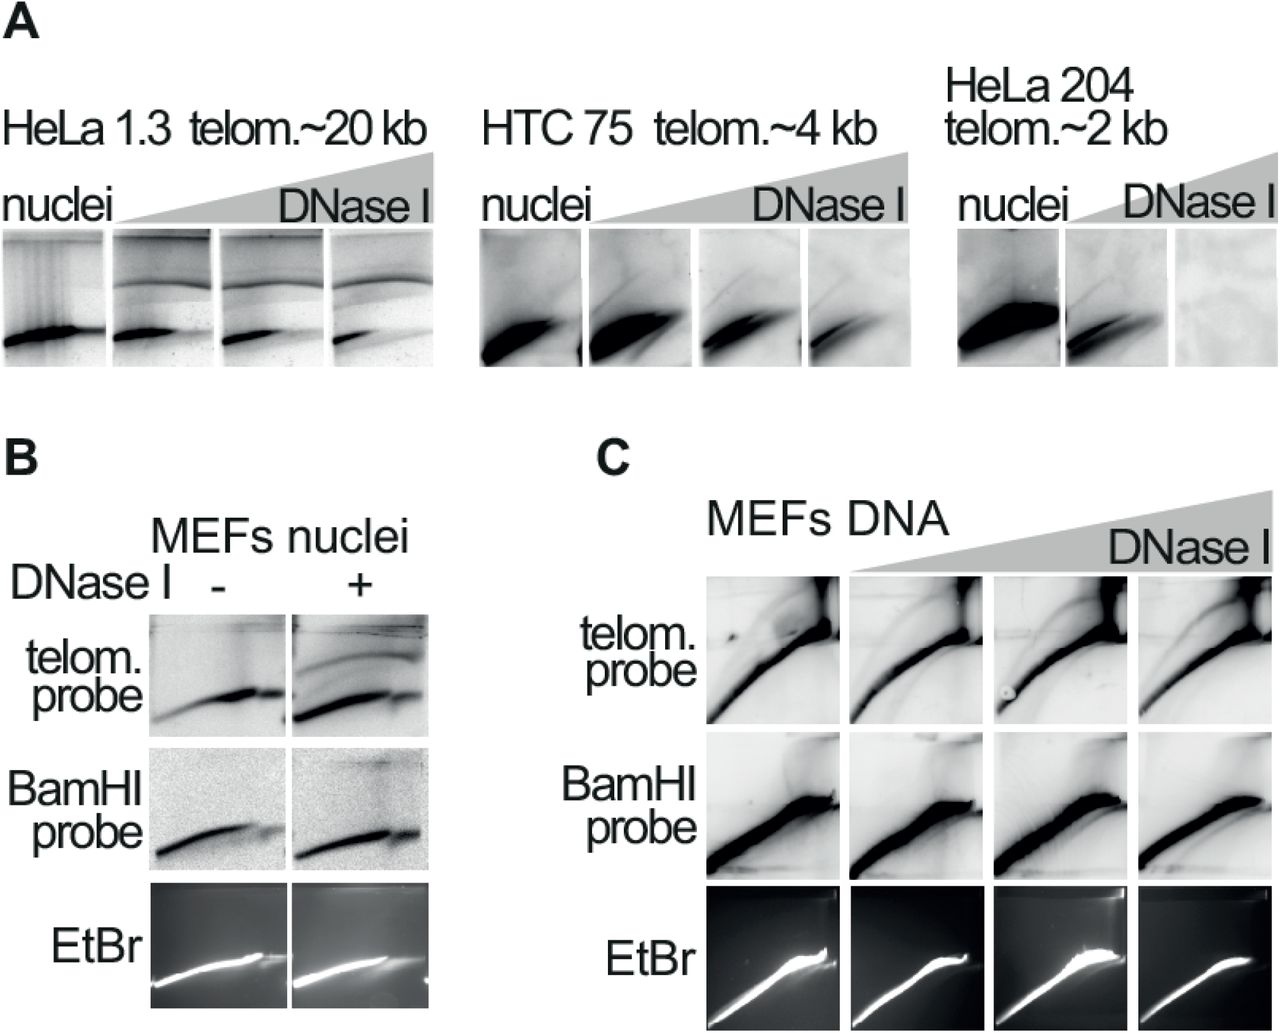 I-loops are induced by single-strand damage at telomeric repeats (related to Figure 5 ). A. 2D-gel analysis showing that the t-circle arc is strongly induced by formation of nicks and gaps at human telomeres. Nuclei prepared from HeLa 1.3 cells (this HeLa clone has long telomeres around, ~20 kb in average) were incubated with either 0; 0.5; 1 or 2.5 μg/ml of <t>DNase</t> I for 8 minutes at RT. Nuclei prepared from HTC75 cells (with telomeres around 4 kb in average) and from HeLa 204 cells (with telomeres around, ~2 kb in average) were incubated with either 0; 5; 10 or 20 μg/ml of DNase I for 8 minutes at RT. The nuclei were then processed for 2D-gel analysis, as described in Figure 5A . B. 2D-gel analysis showing that DNase I treatment does not induce the t-circle arc in the bulk DNA or at the BamHI repeats. In a similar experiment as the one described in Figure 5A , nuclei were treated with 2.5 μg/ml of DNase I. Genomic was digested with BglI, split in two and separated on 2D-gels, in duplicate. After blotting, one membrane was hybridized with a probe recognizing the TTAGGG repeats, while the other with a probe recognizing the mouse BamHI repeats. The ethidium bromide staining of one of the second-dimension gels is shown at the bottom. C. 2D-gel analysis showing that DNase I treatment on isolated DNA does not induce the t-circle arc in the bulk DNA or at the BamHI repeats. DNA from the same experiment shown in Figure 5B , was digested with KpnI, split in two and then separated in 2D-gels, in duplicate. After blotting, one membrane was hybridized with a probe recognizing the TTAGGG repeats and the other with a probe recognizing the mouse BamHI repeats. The ethidium bromide staining of one of the second-dimension gels is shown at the bottom.